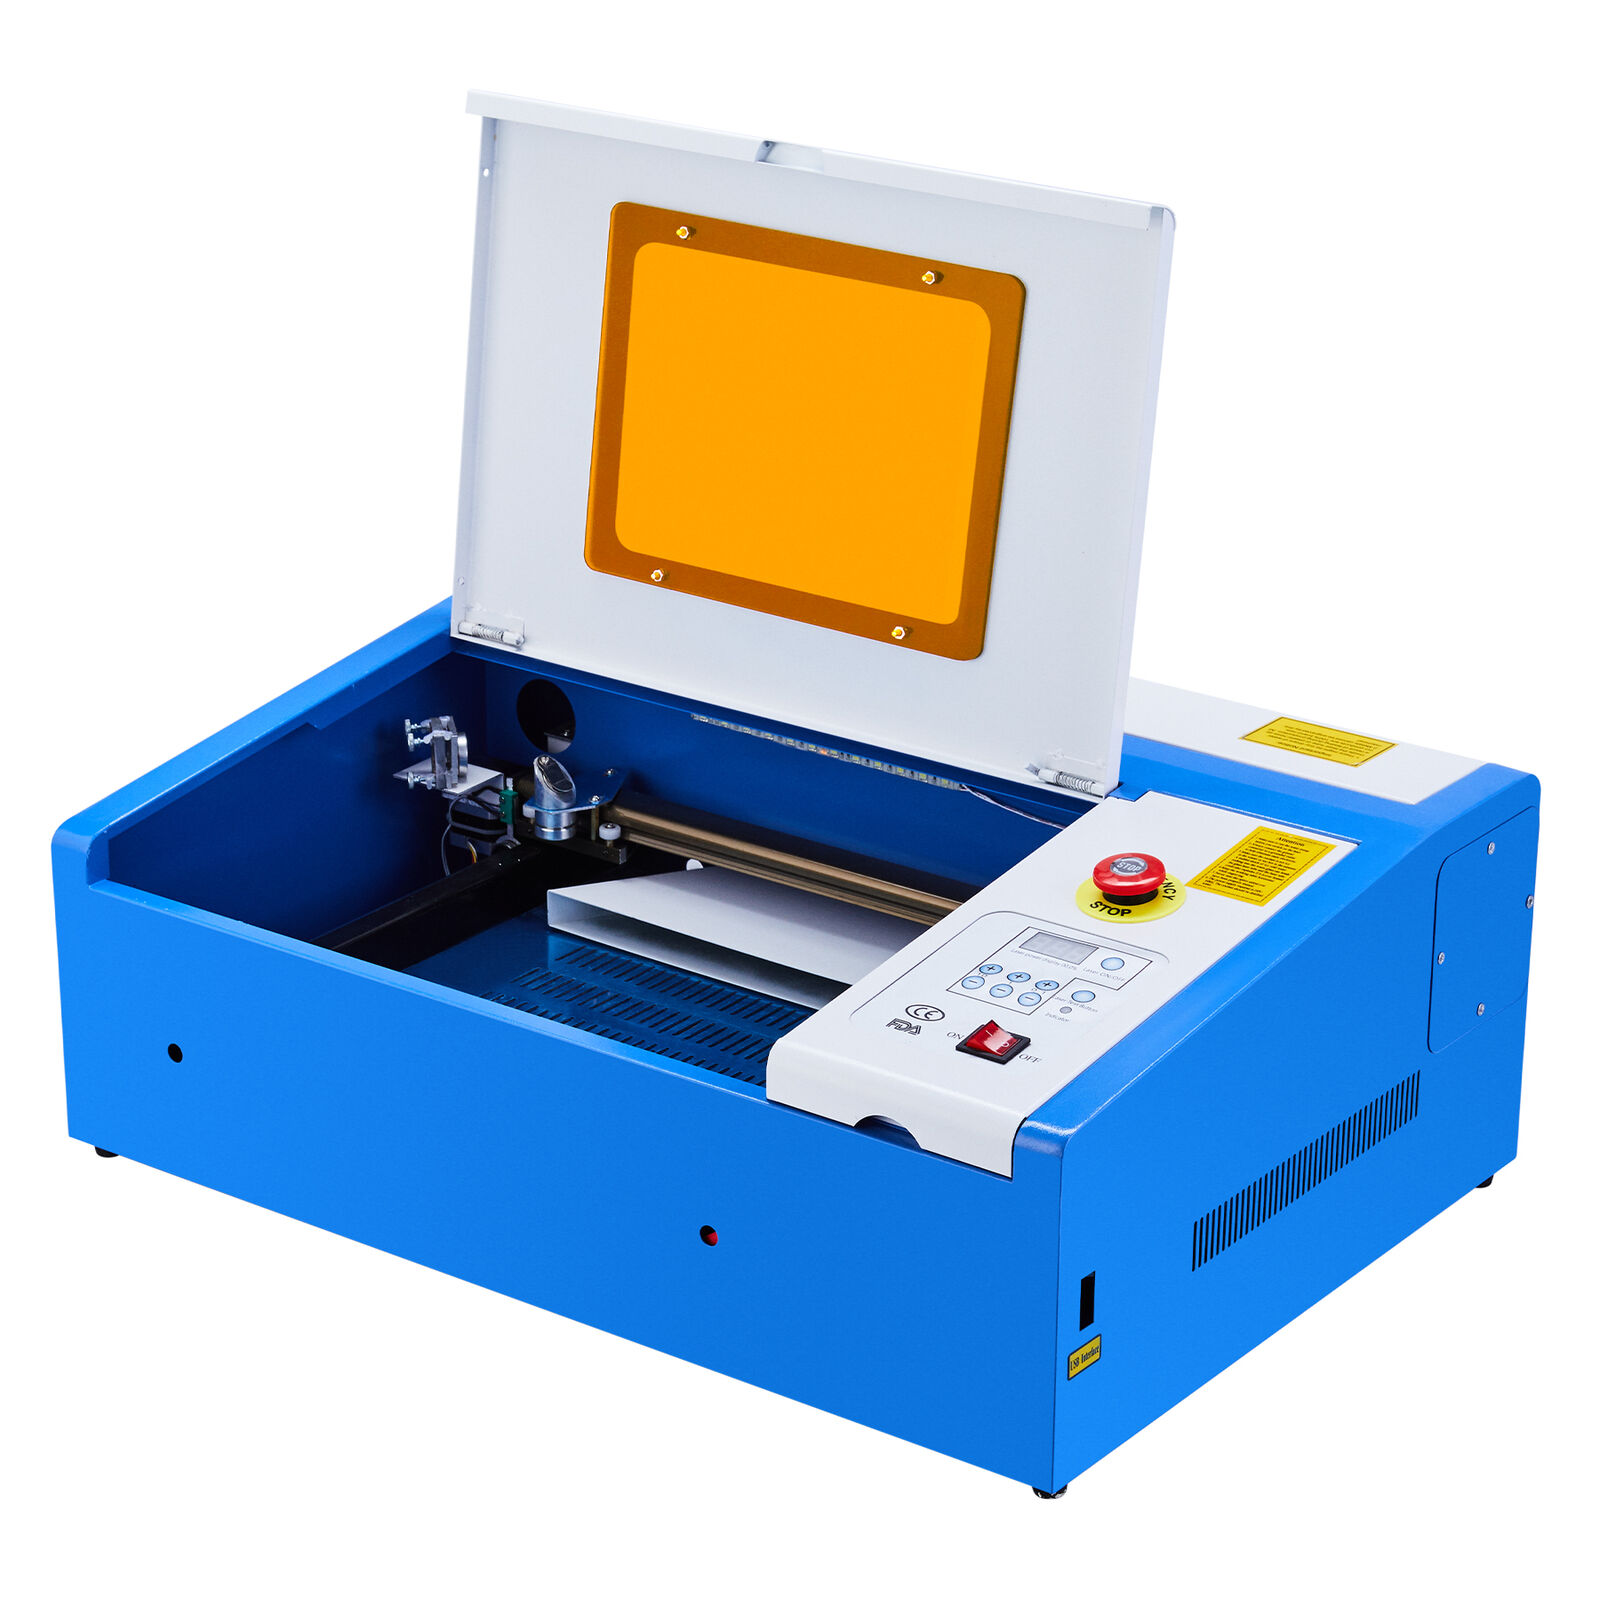 LASER ENGRAVER CUTTER AIR ASSIST METAL NOZZLE PUMP AND TUBE K40-40W